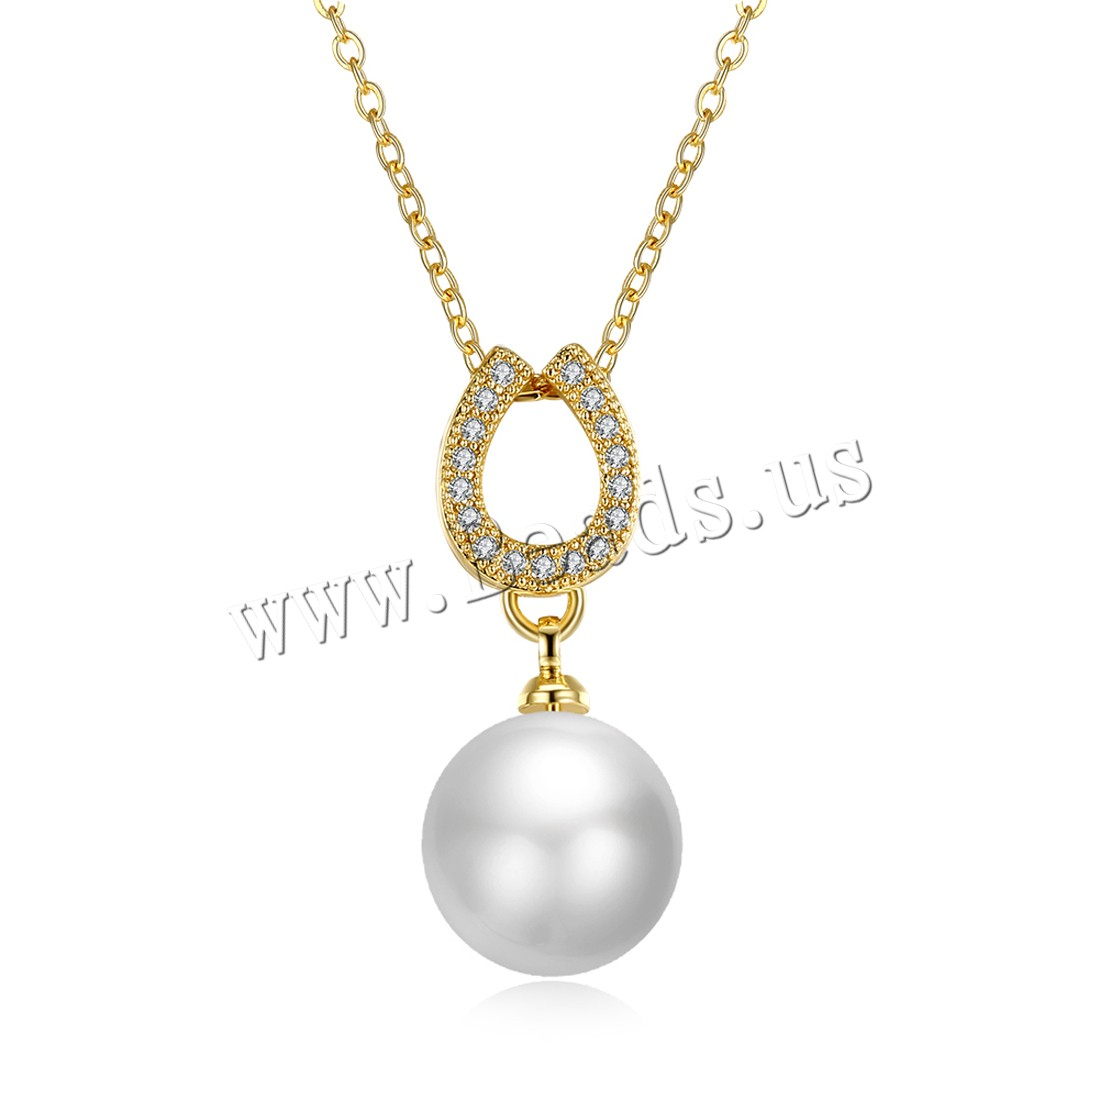 Buy Comeon® Jewelry Necklace Brass Freshwater Pearl 1.9lnch extender chain real gold plated natural & oval chain & woman & cubic zirconia nickel lead & cadmium free 11x25mm Sold Per Approx 17.7 Inch Strand